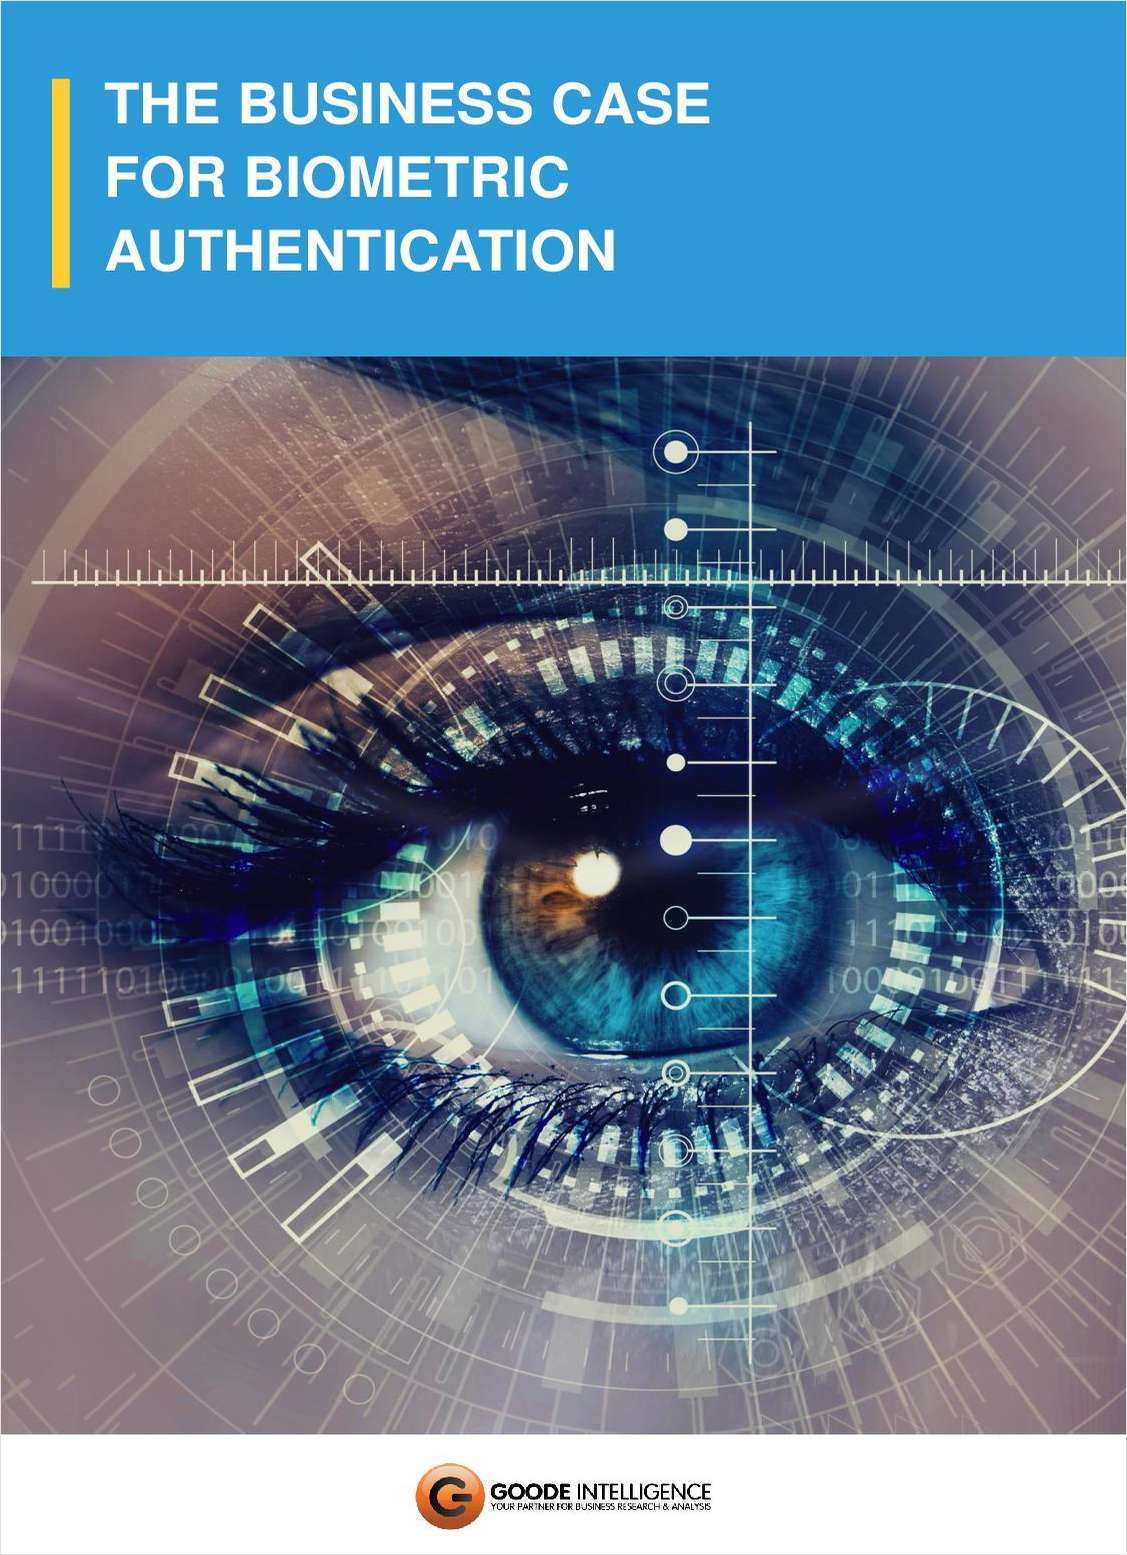 The Business Case for Biometric Authentication